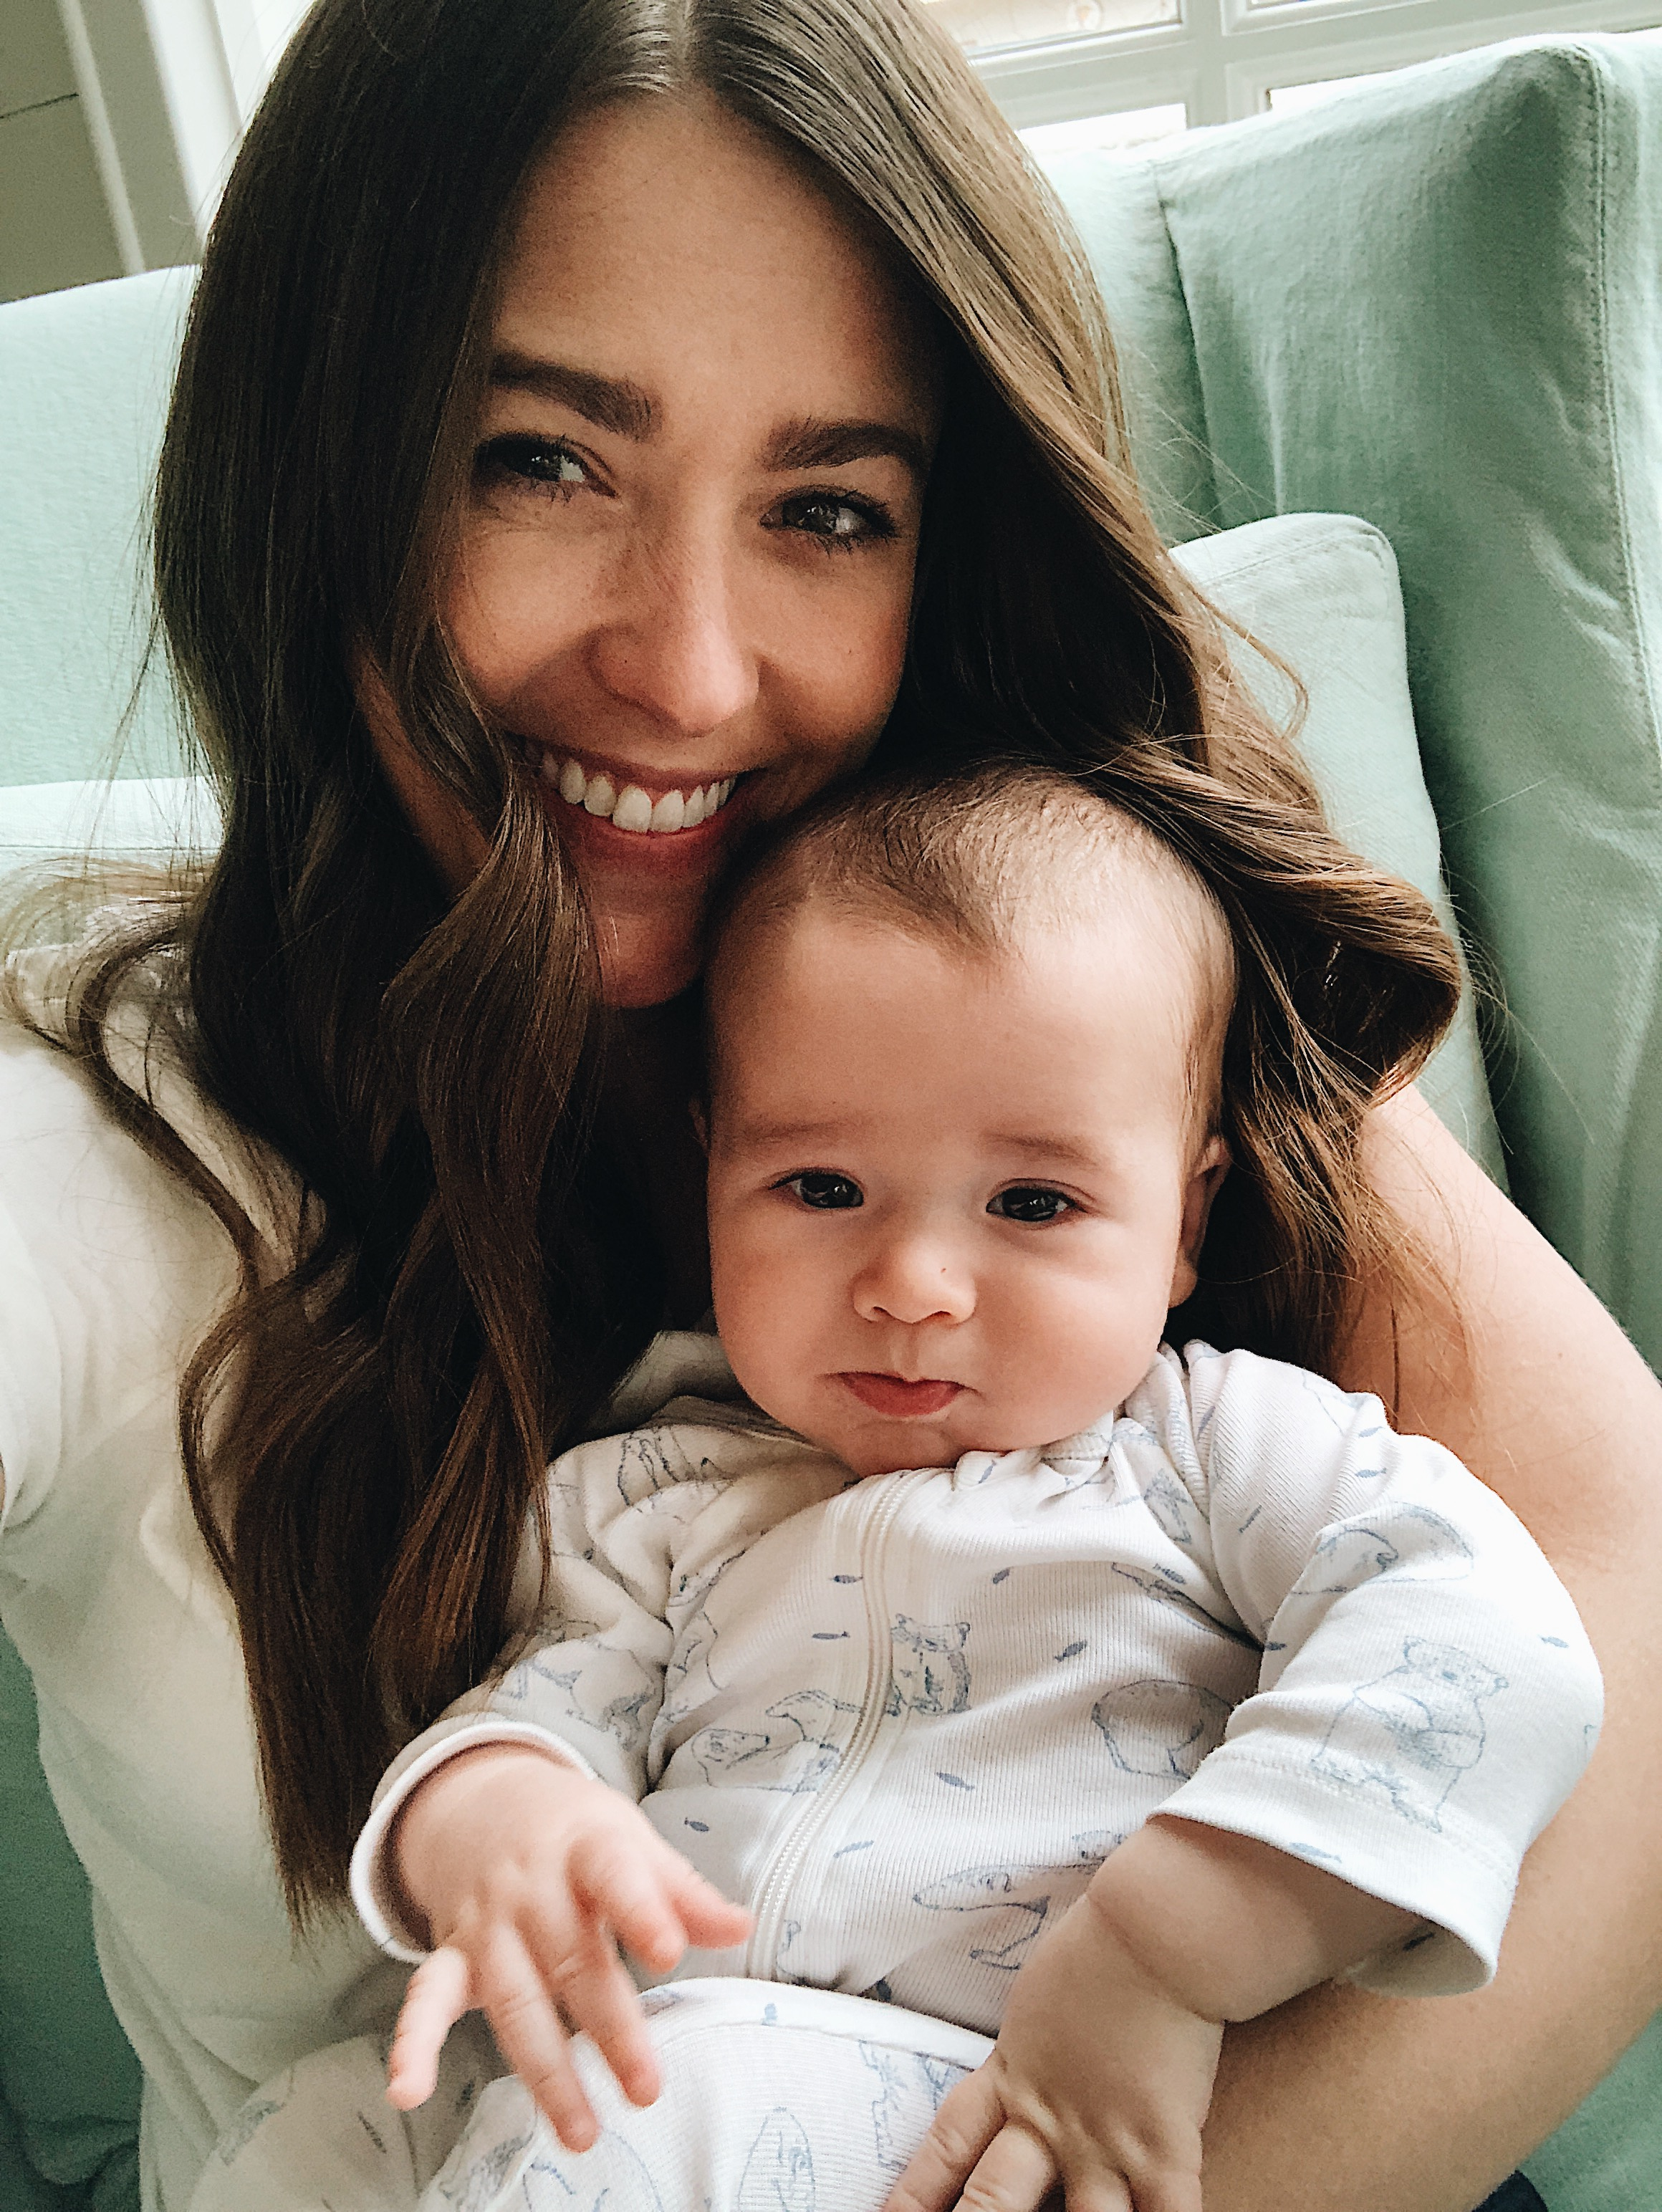 Liz Adams shares a 4 month update for her son Jack.